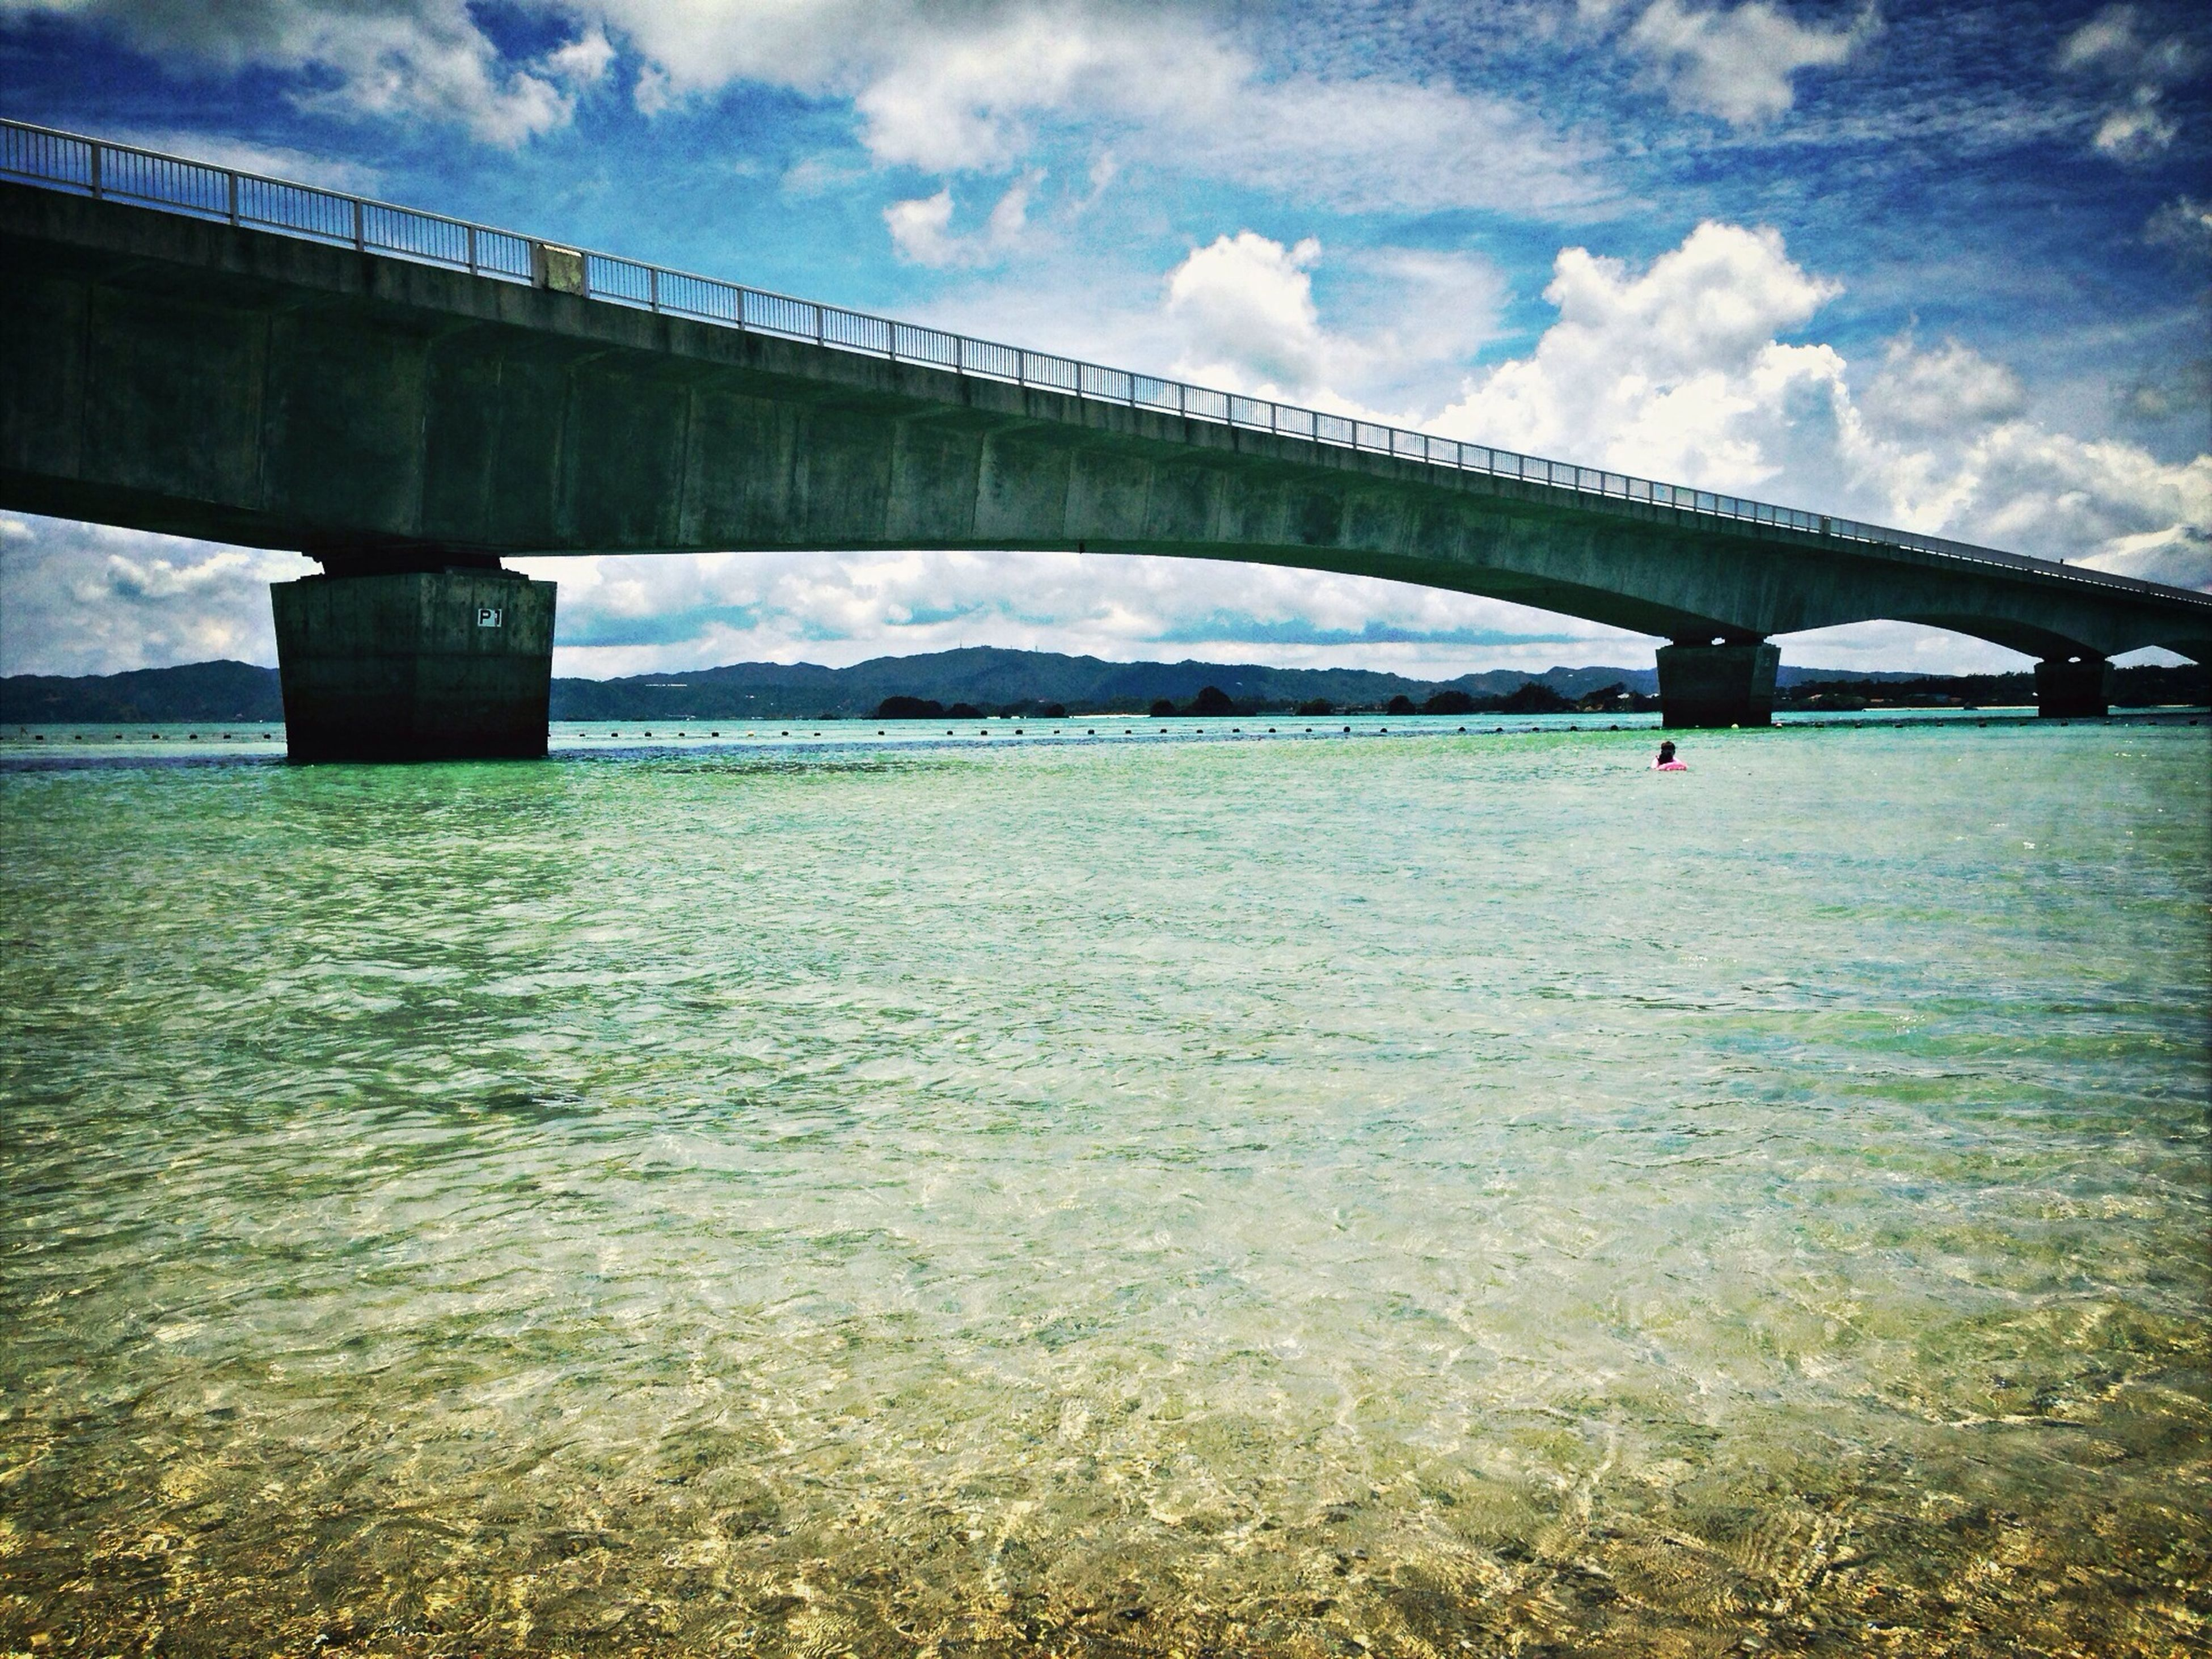 bridge - man made structure, connection, transportation, water, sky, river, engineering, cloud - sky, waterfront, bridge, built structure, architecture, mode of transport, cloud, cloudy, suspension bridge, rippled, nature, tranquility, travel